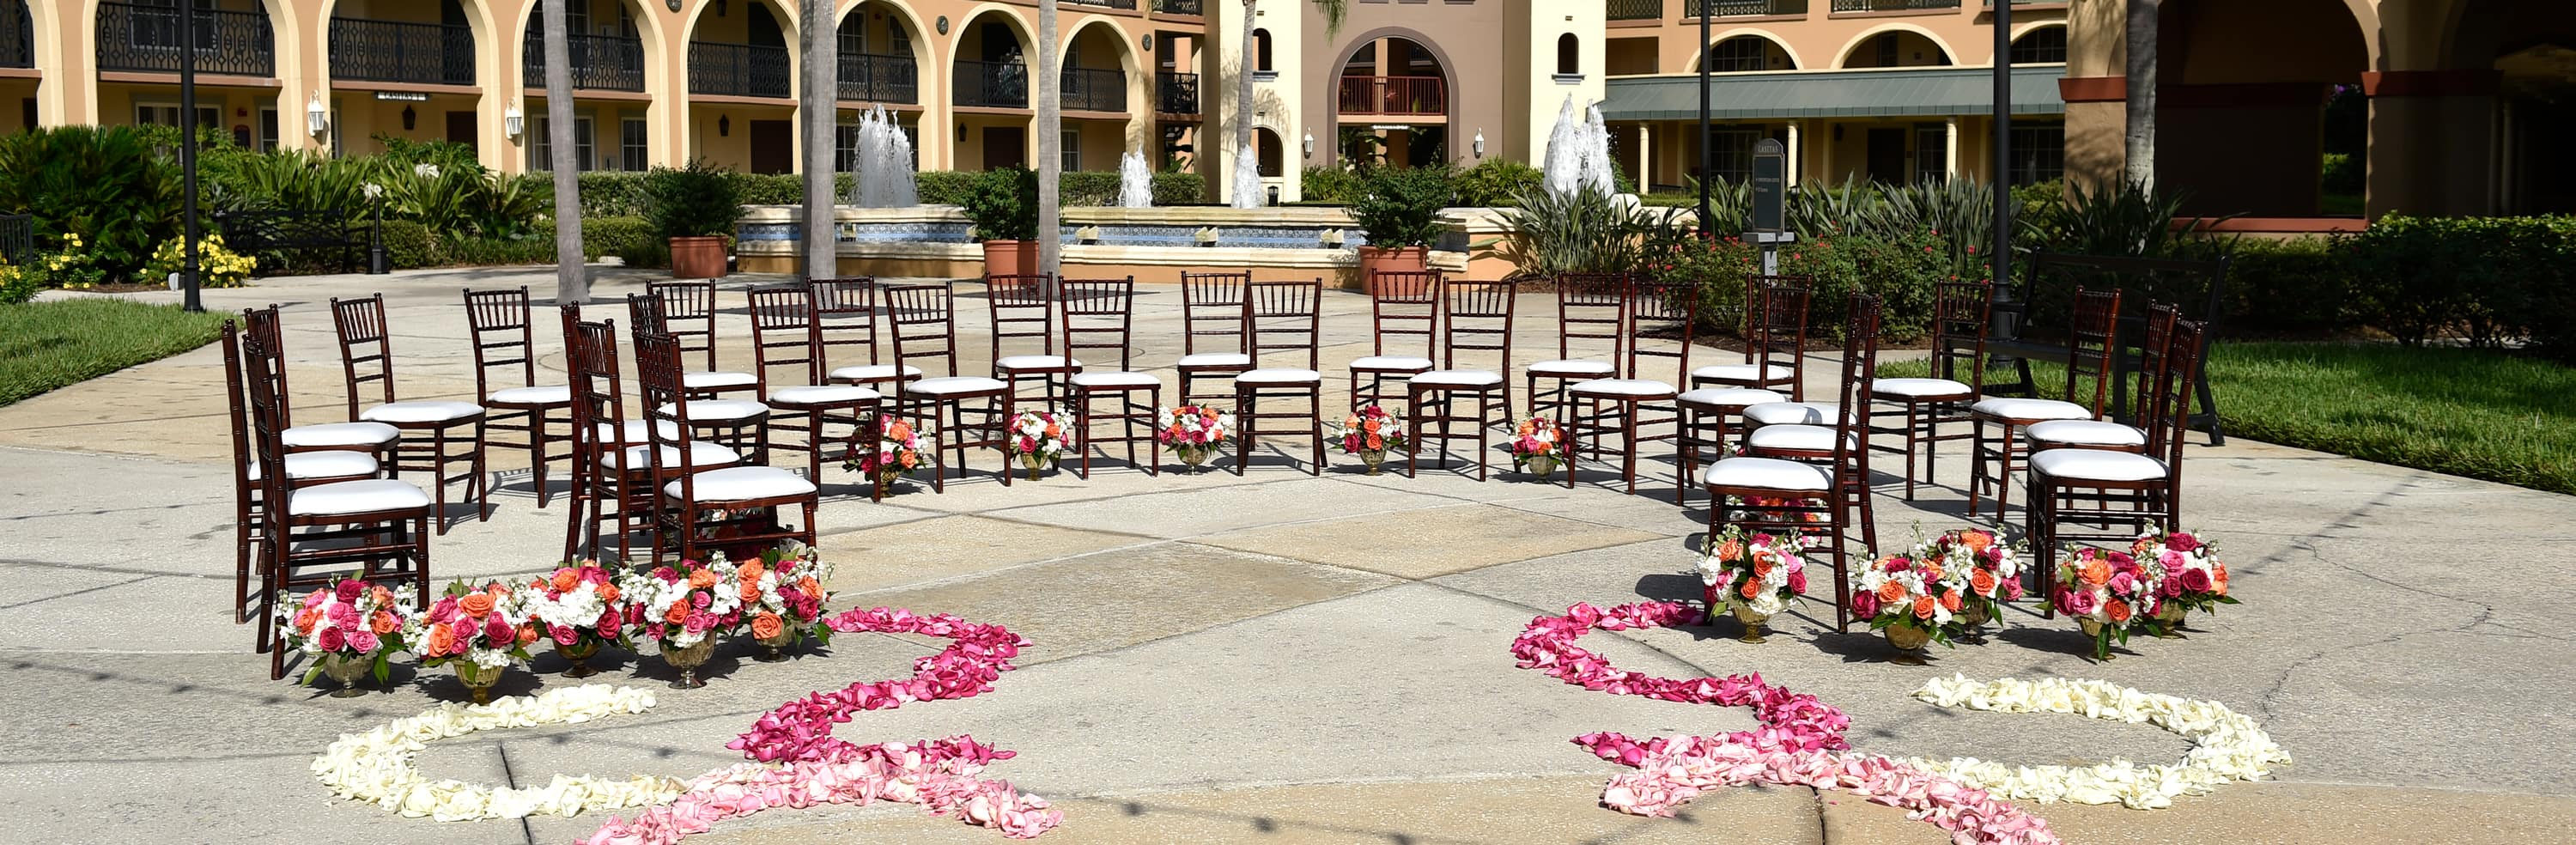 Rose petals lead to a group of chairs arranged in a semi circle on a courtyard with a large water fountain